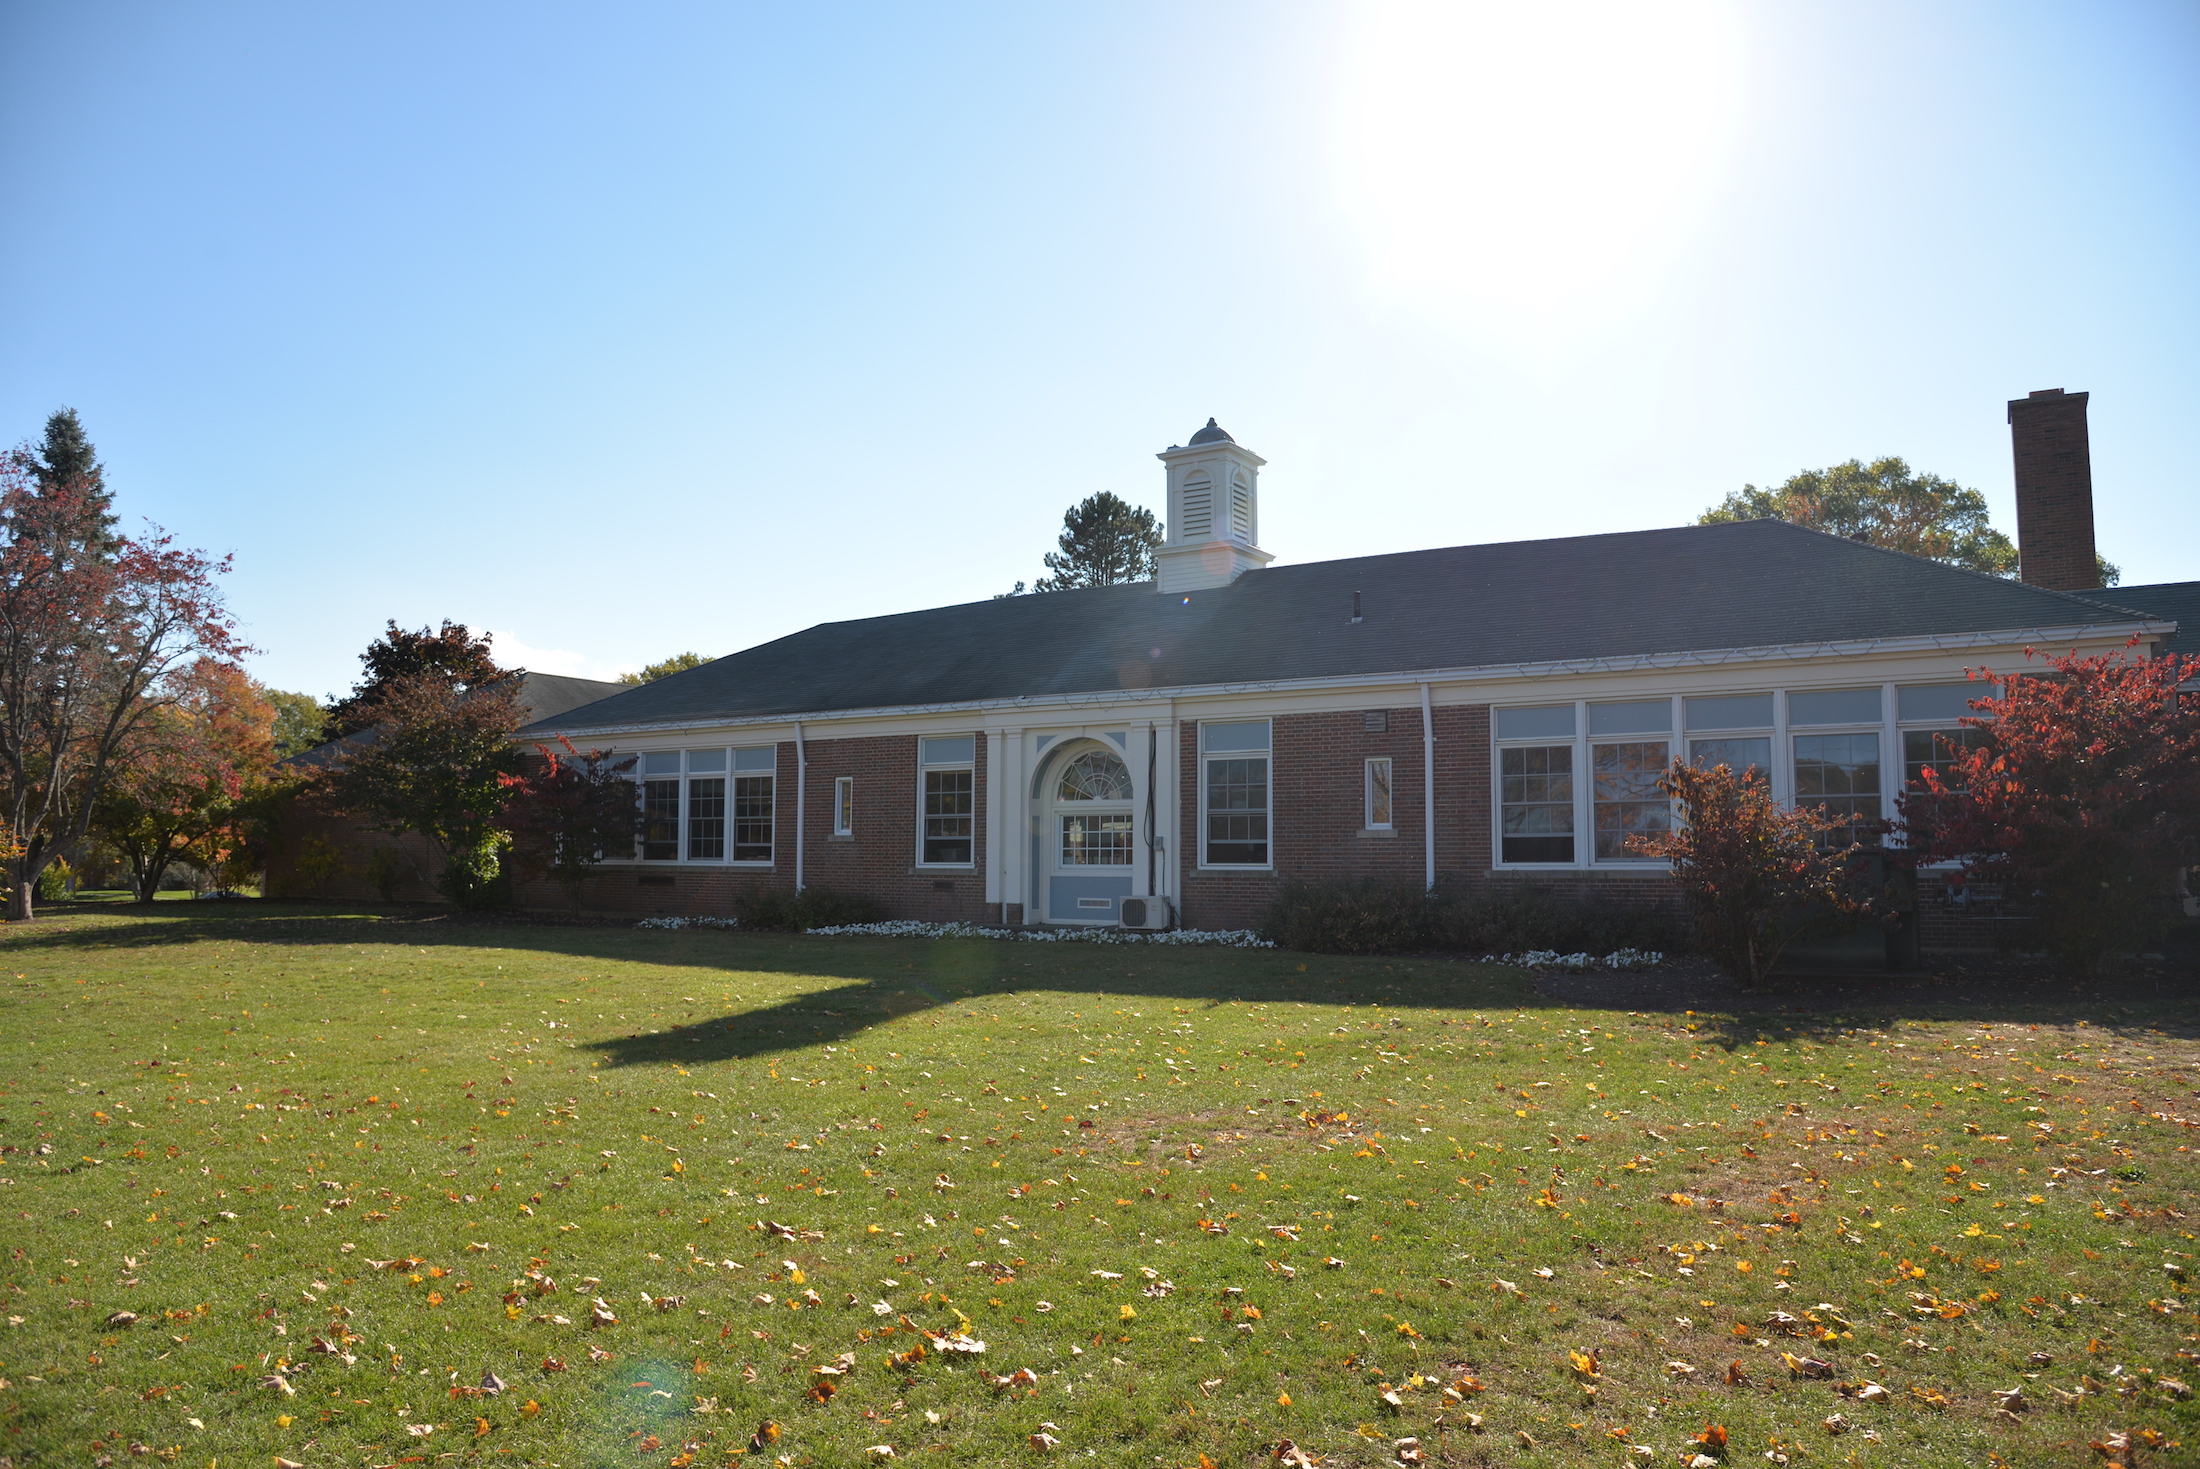 The Mansfield Town council has plans to consolidate its three elementary schools into one. (File photo/The Daily Campus)